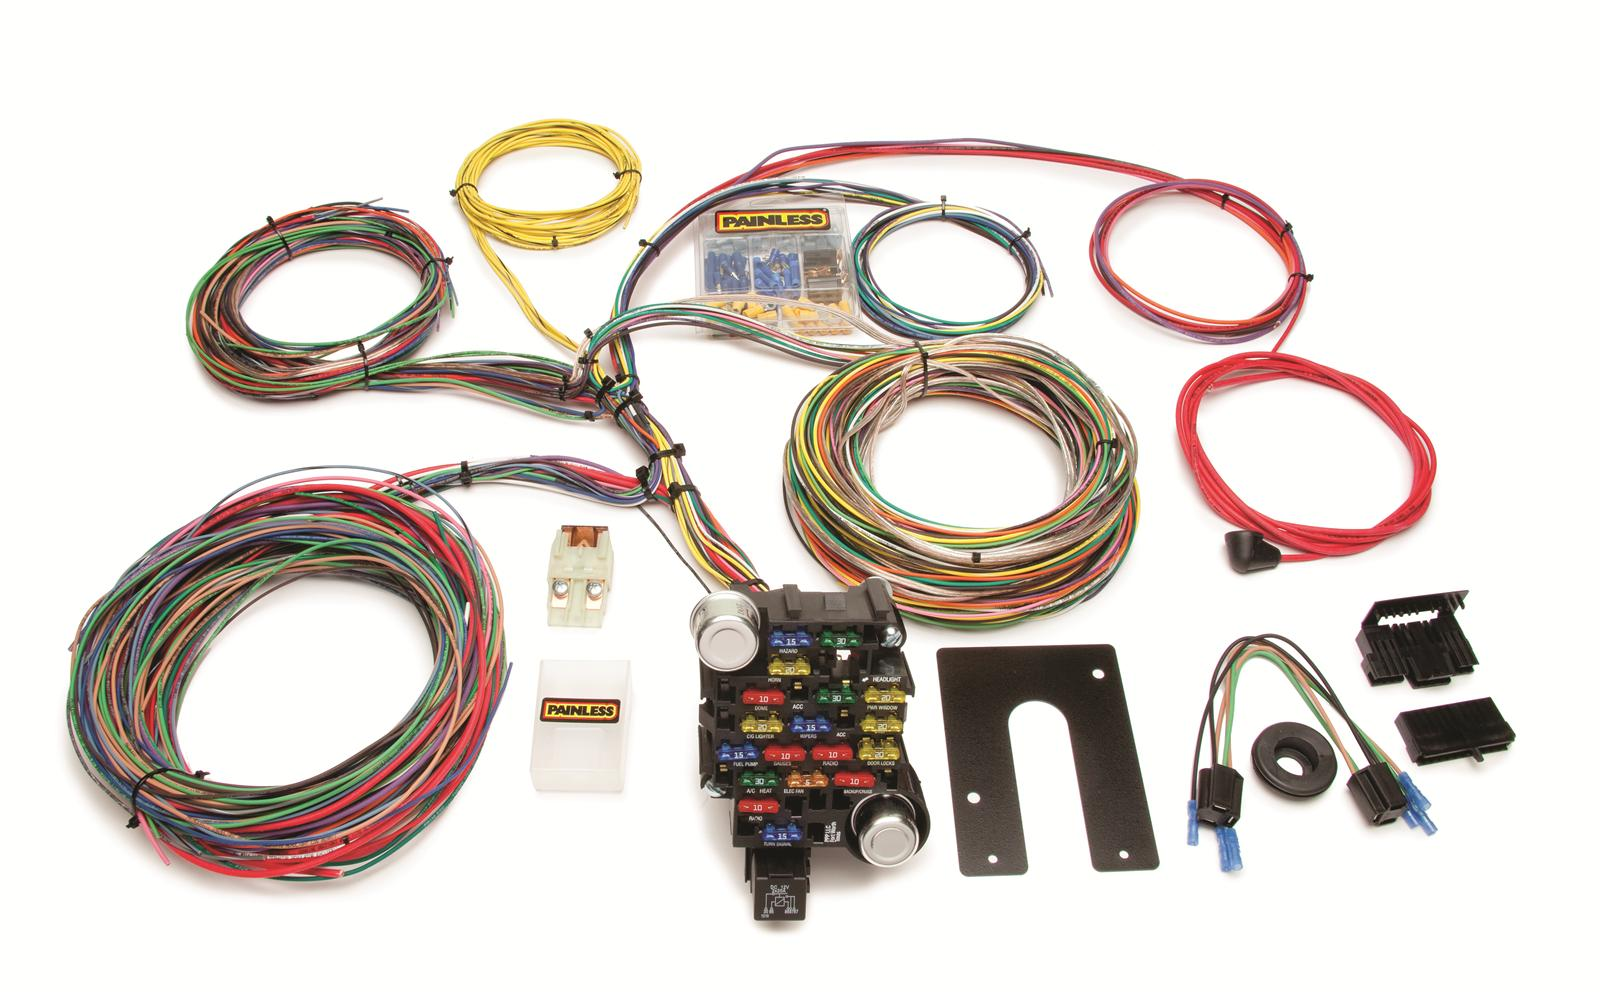 painless performance 28 circuit universal harnesses 10202 free rh summitracing com universal wiring harness ebay universal wiring harness diagram